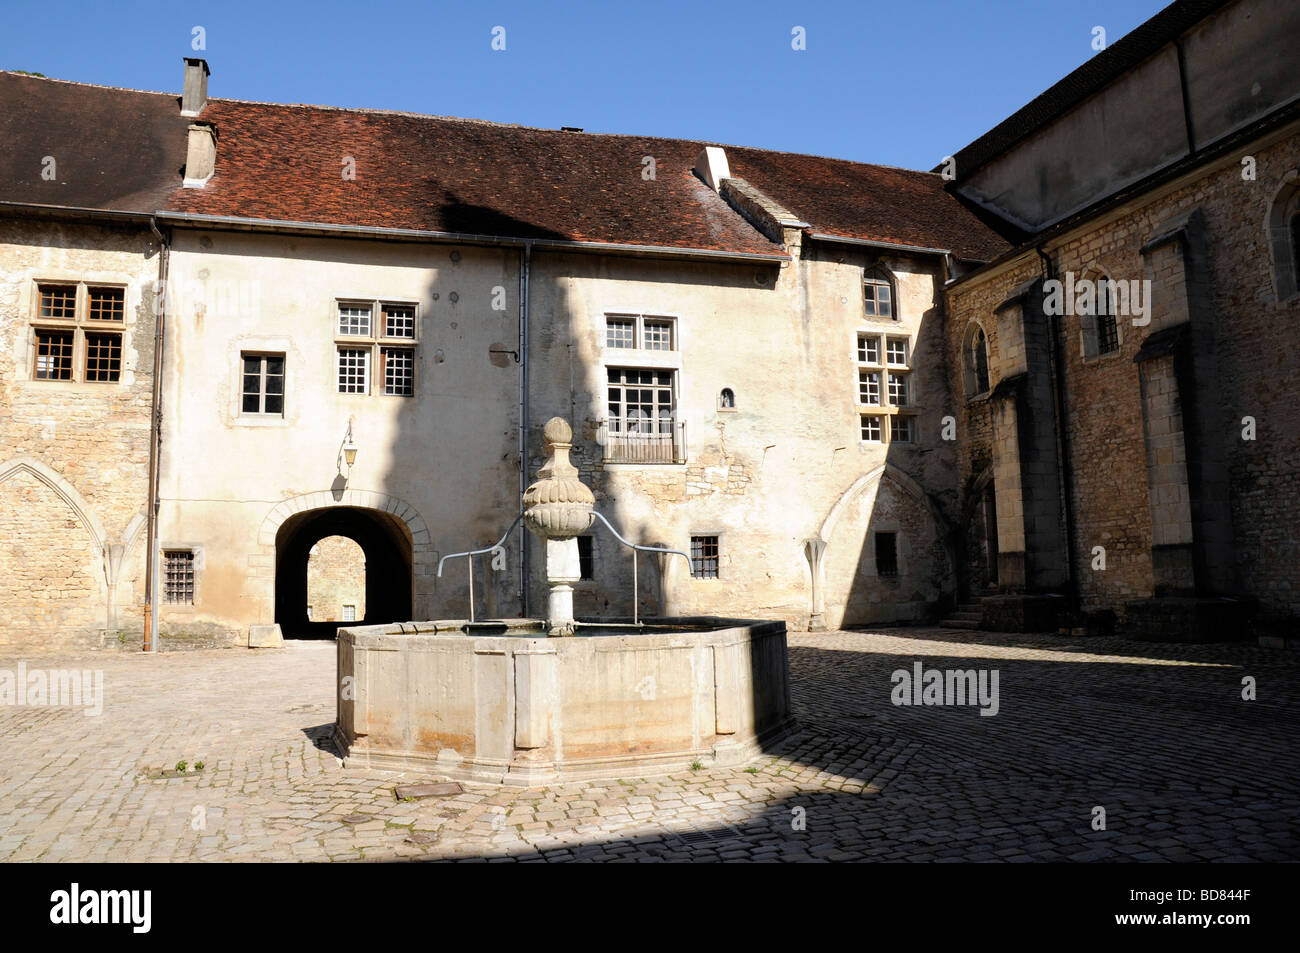 Baume Abbey, Baume les Messieurs, Jura, France. - Stock Image